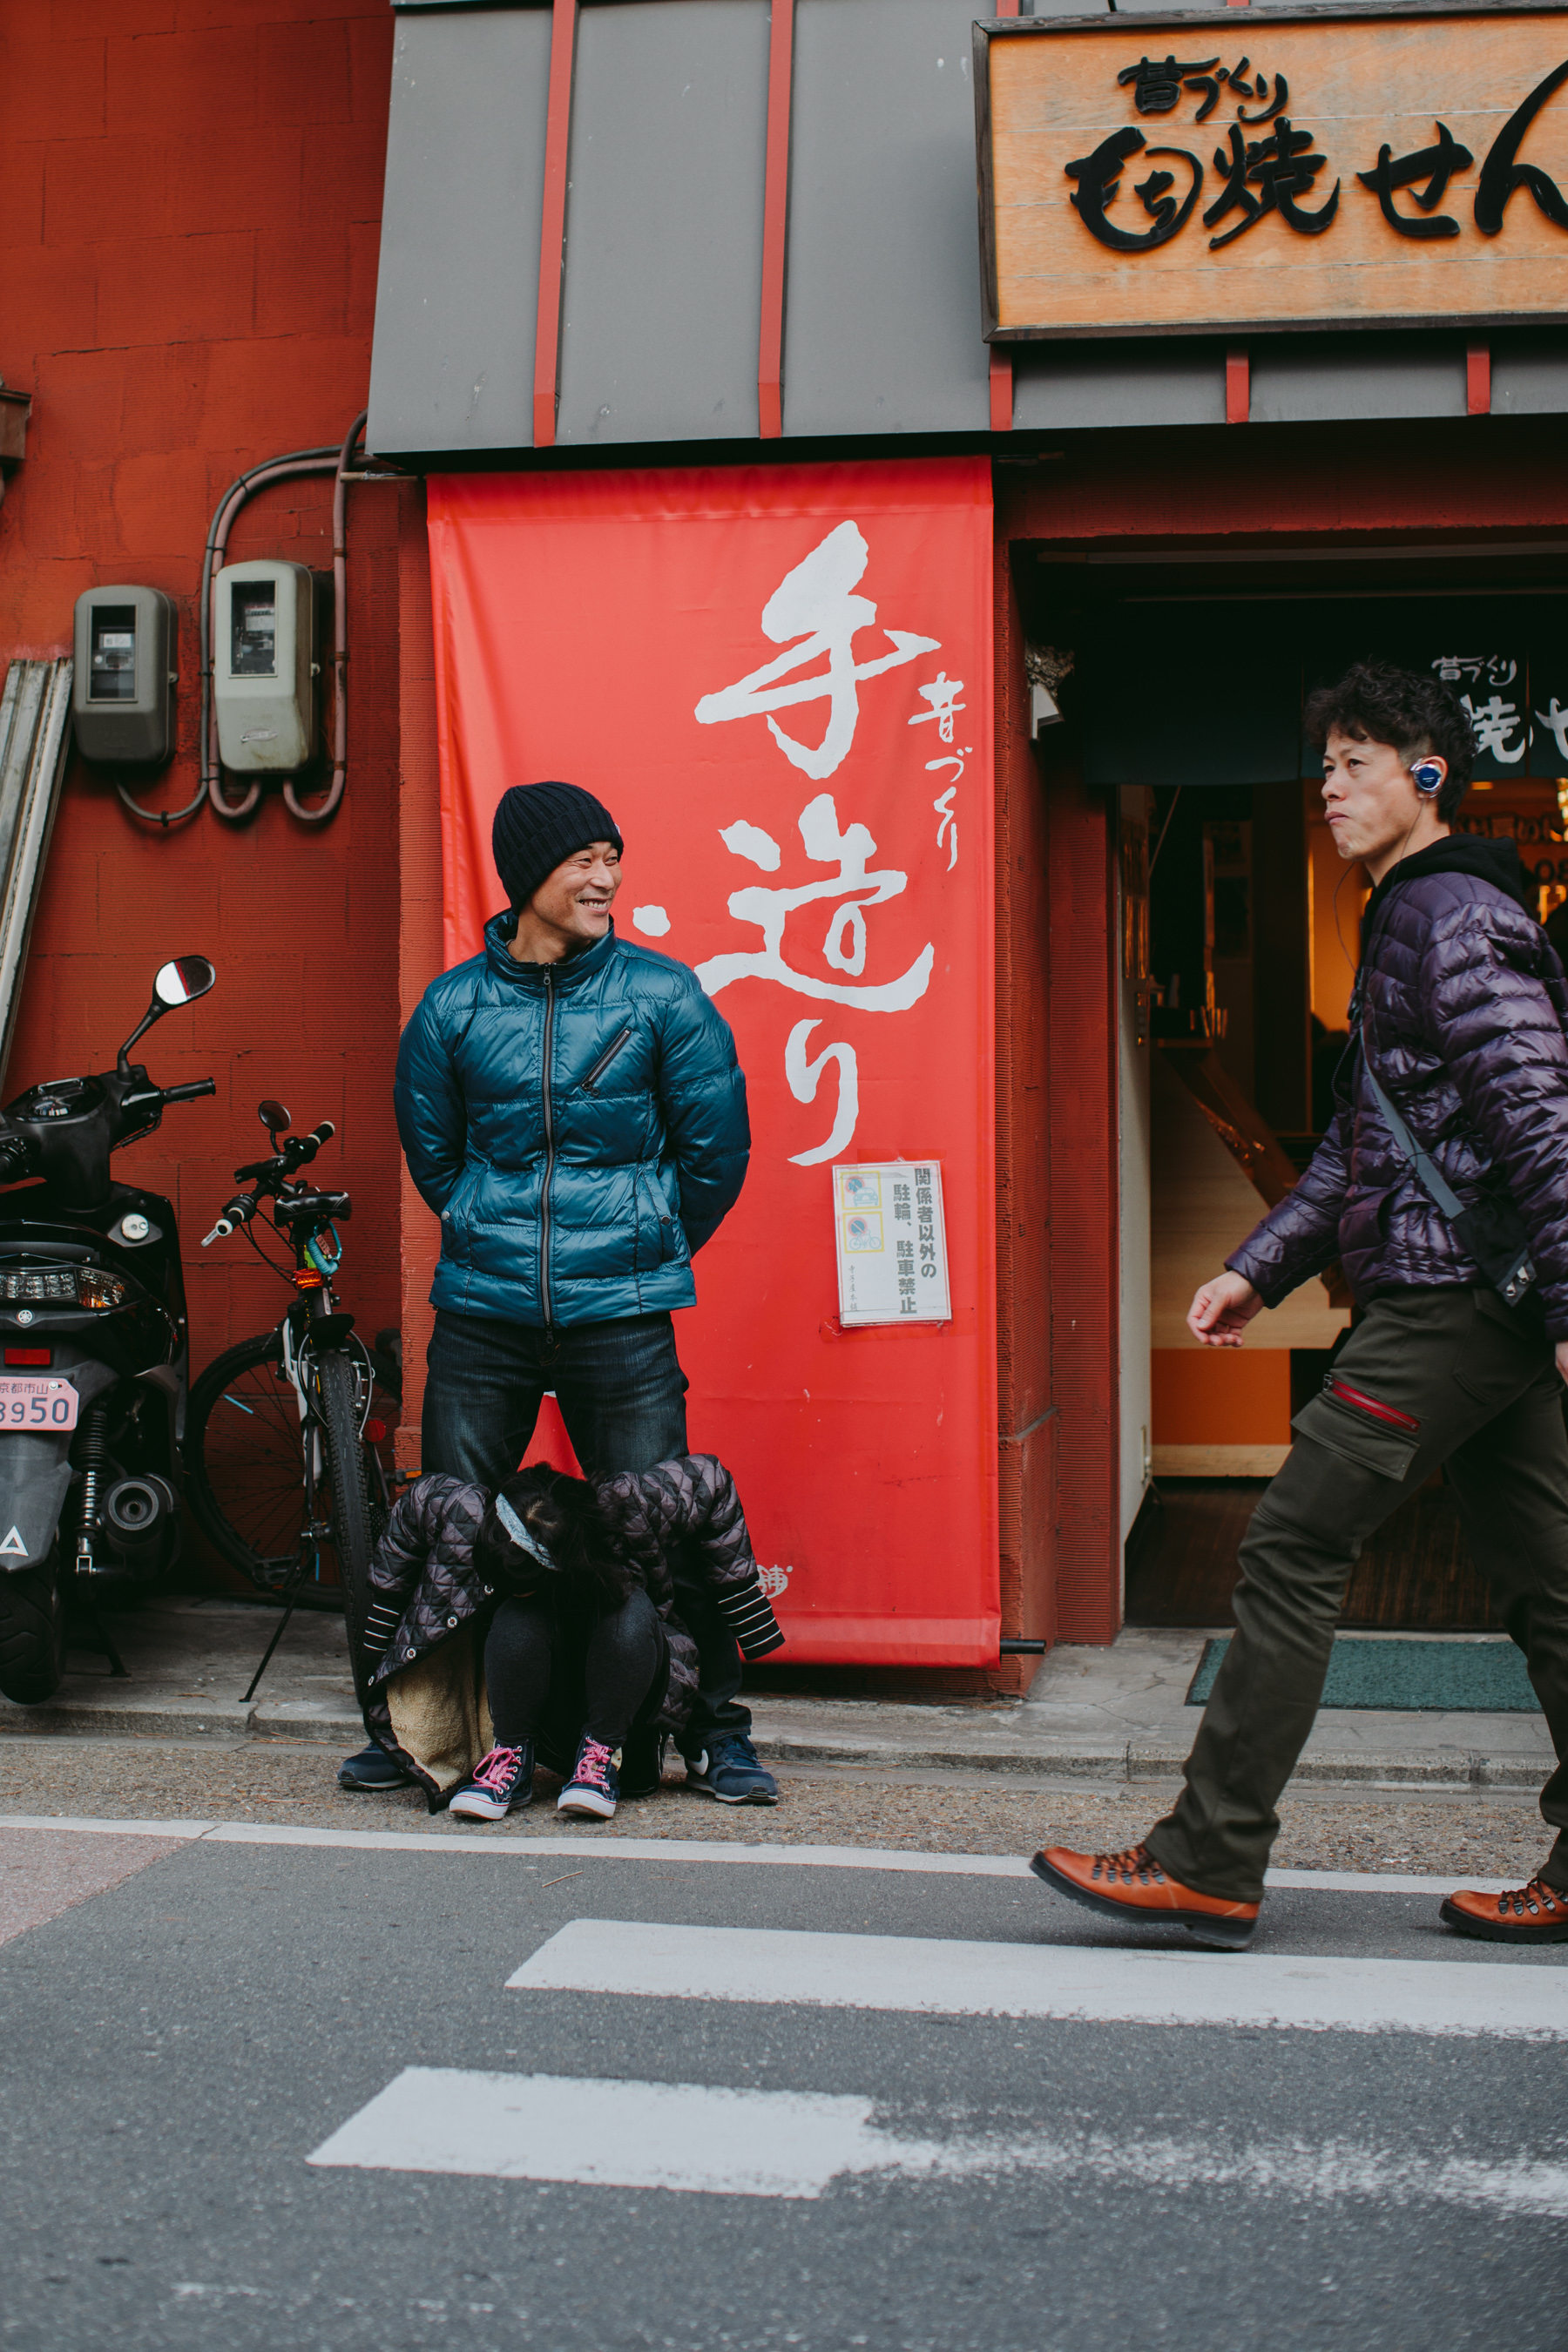 MikeSeehagel-commercial-lifestyle-travel-photography-Japan-58.jpg